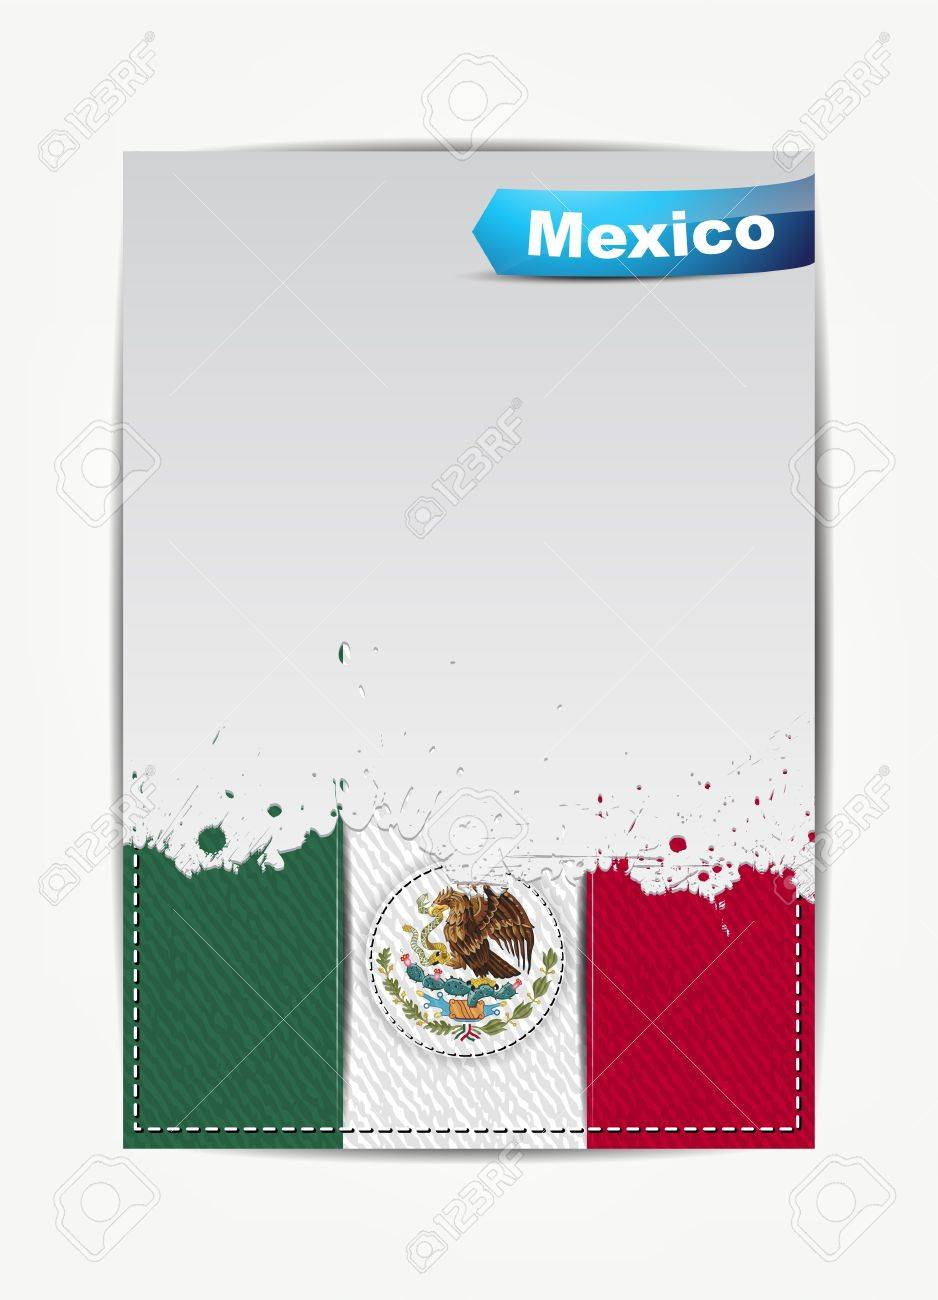 Stitched Mexico flag with Mexico Country Vector